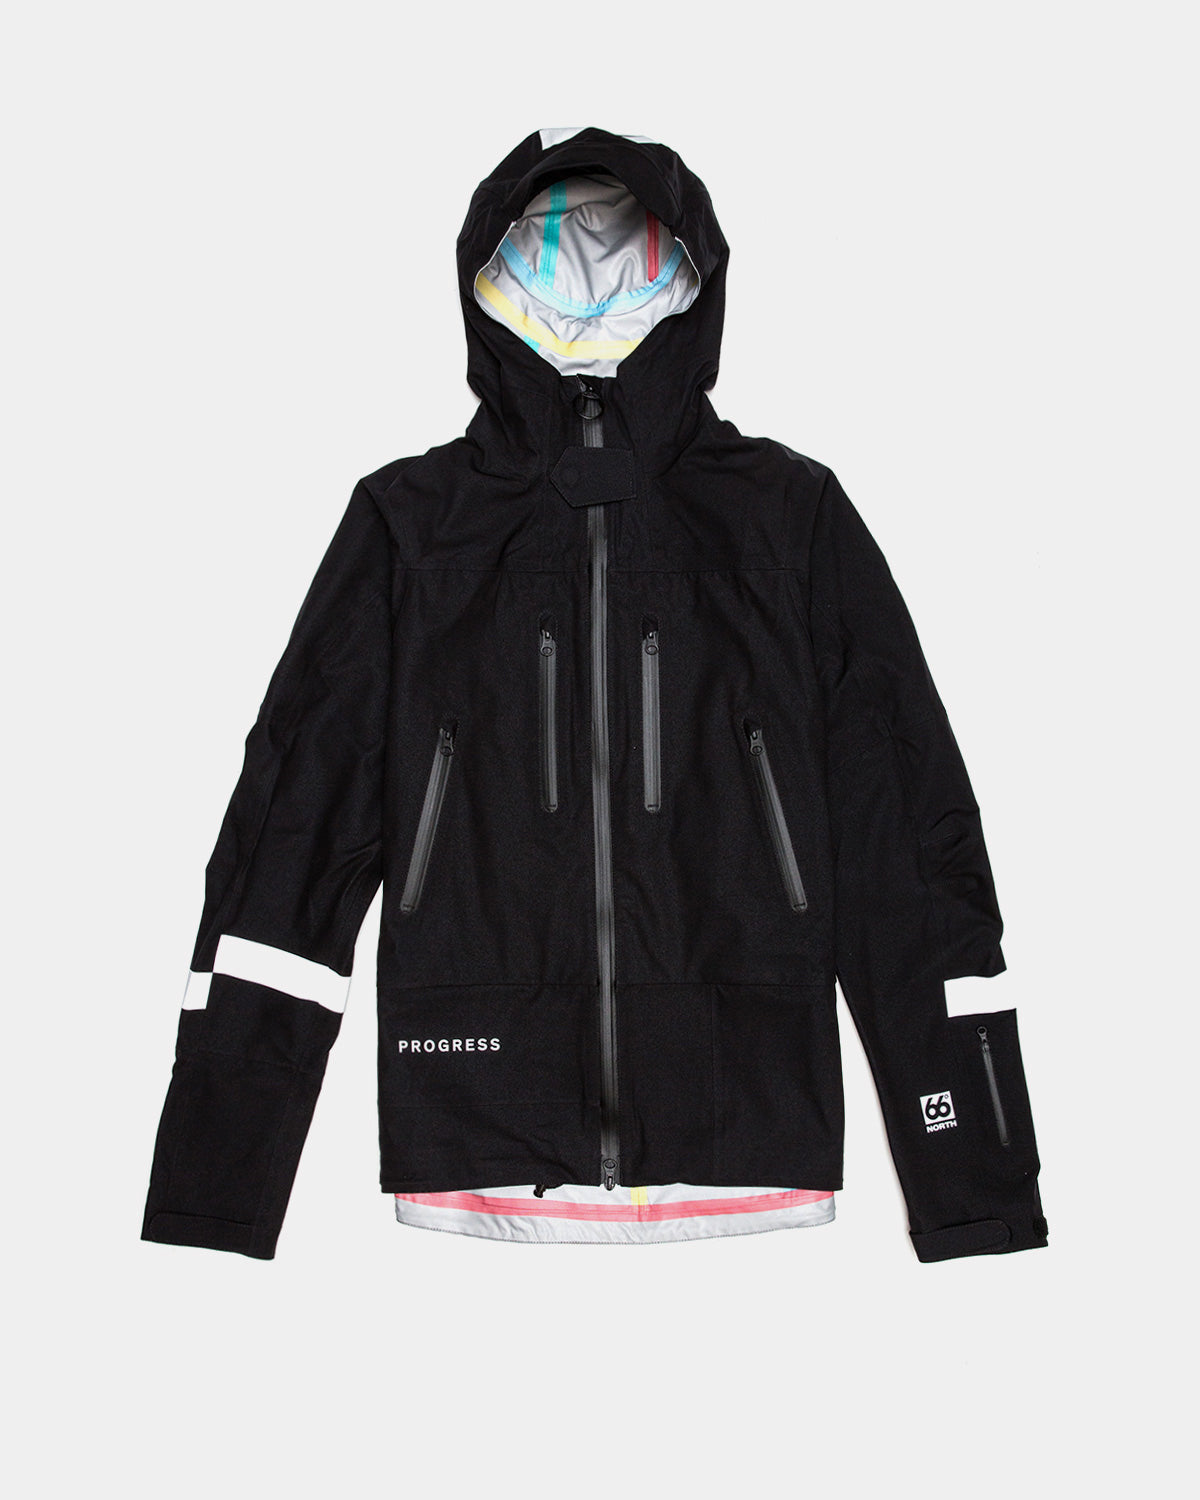 Soulland - Soulland x 66 North Vala Shell Jacket (Black)